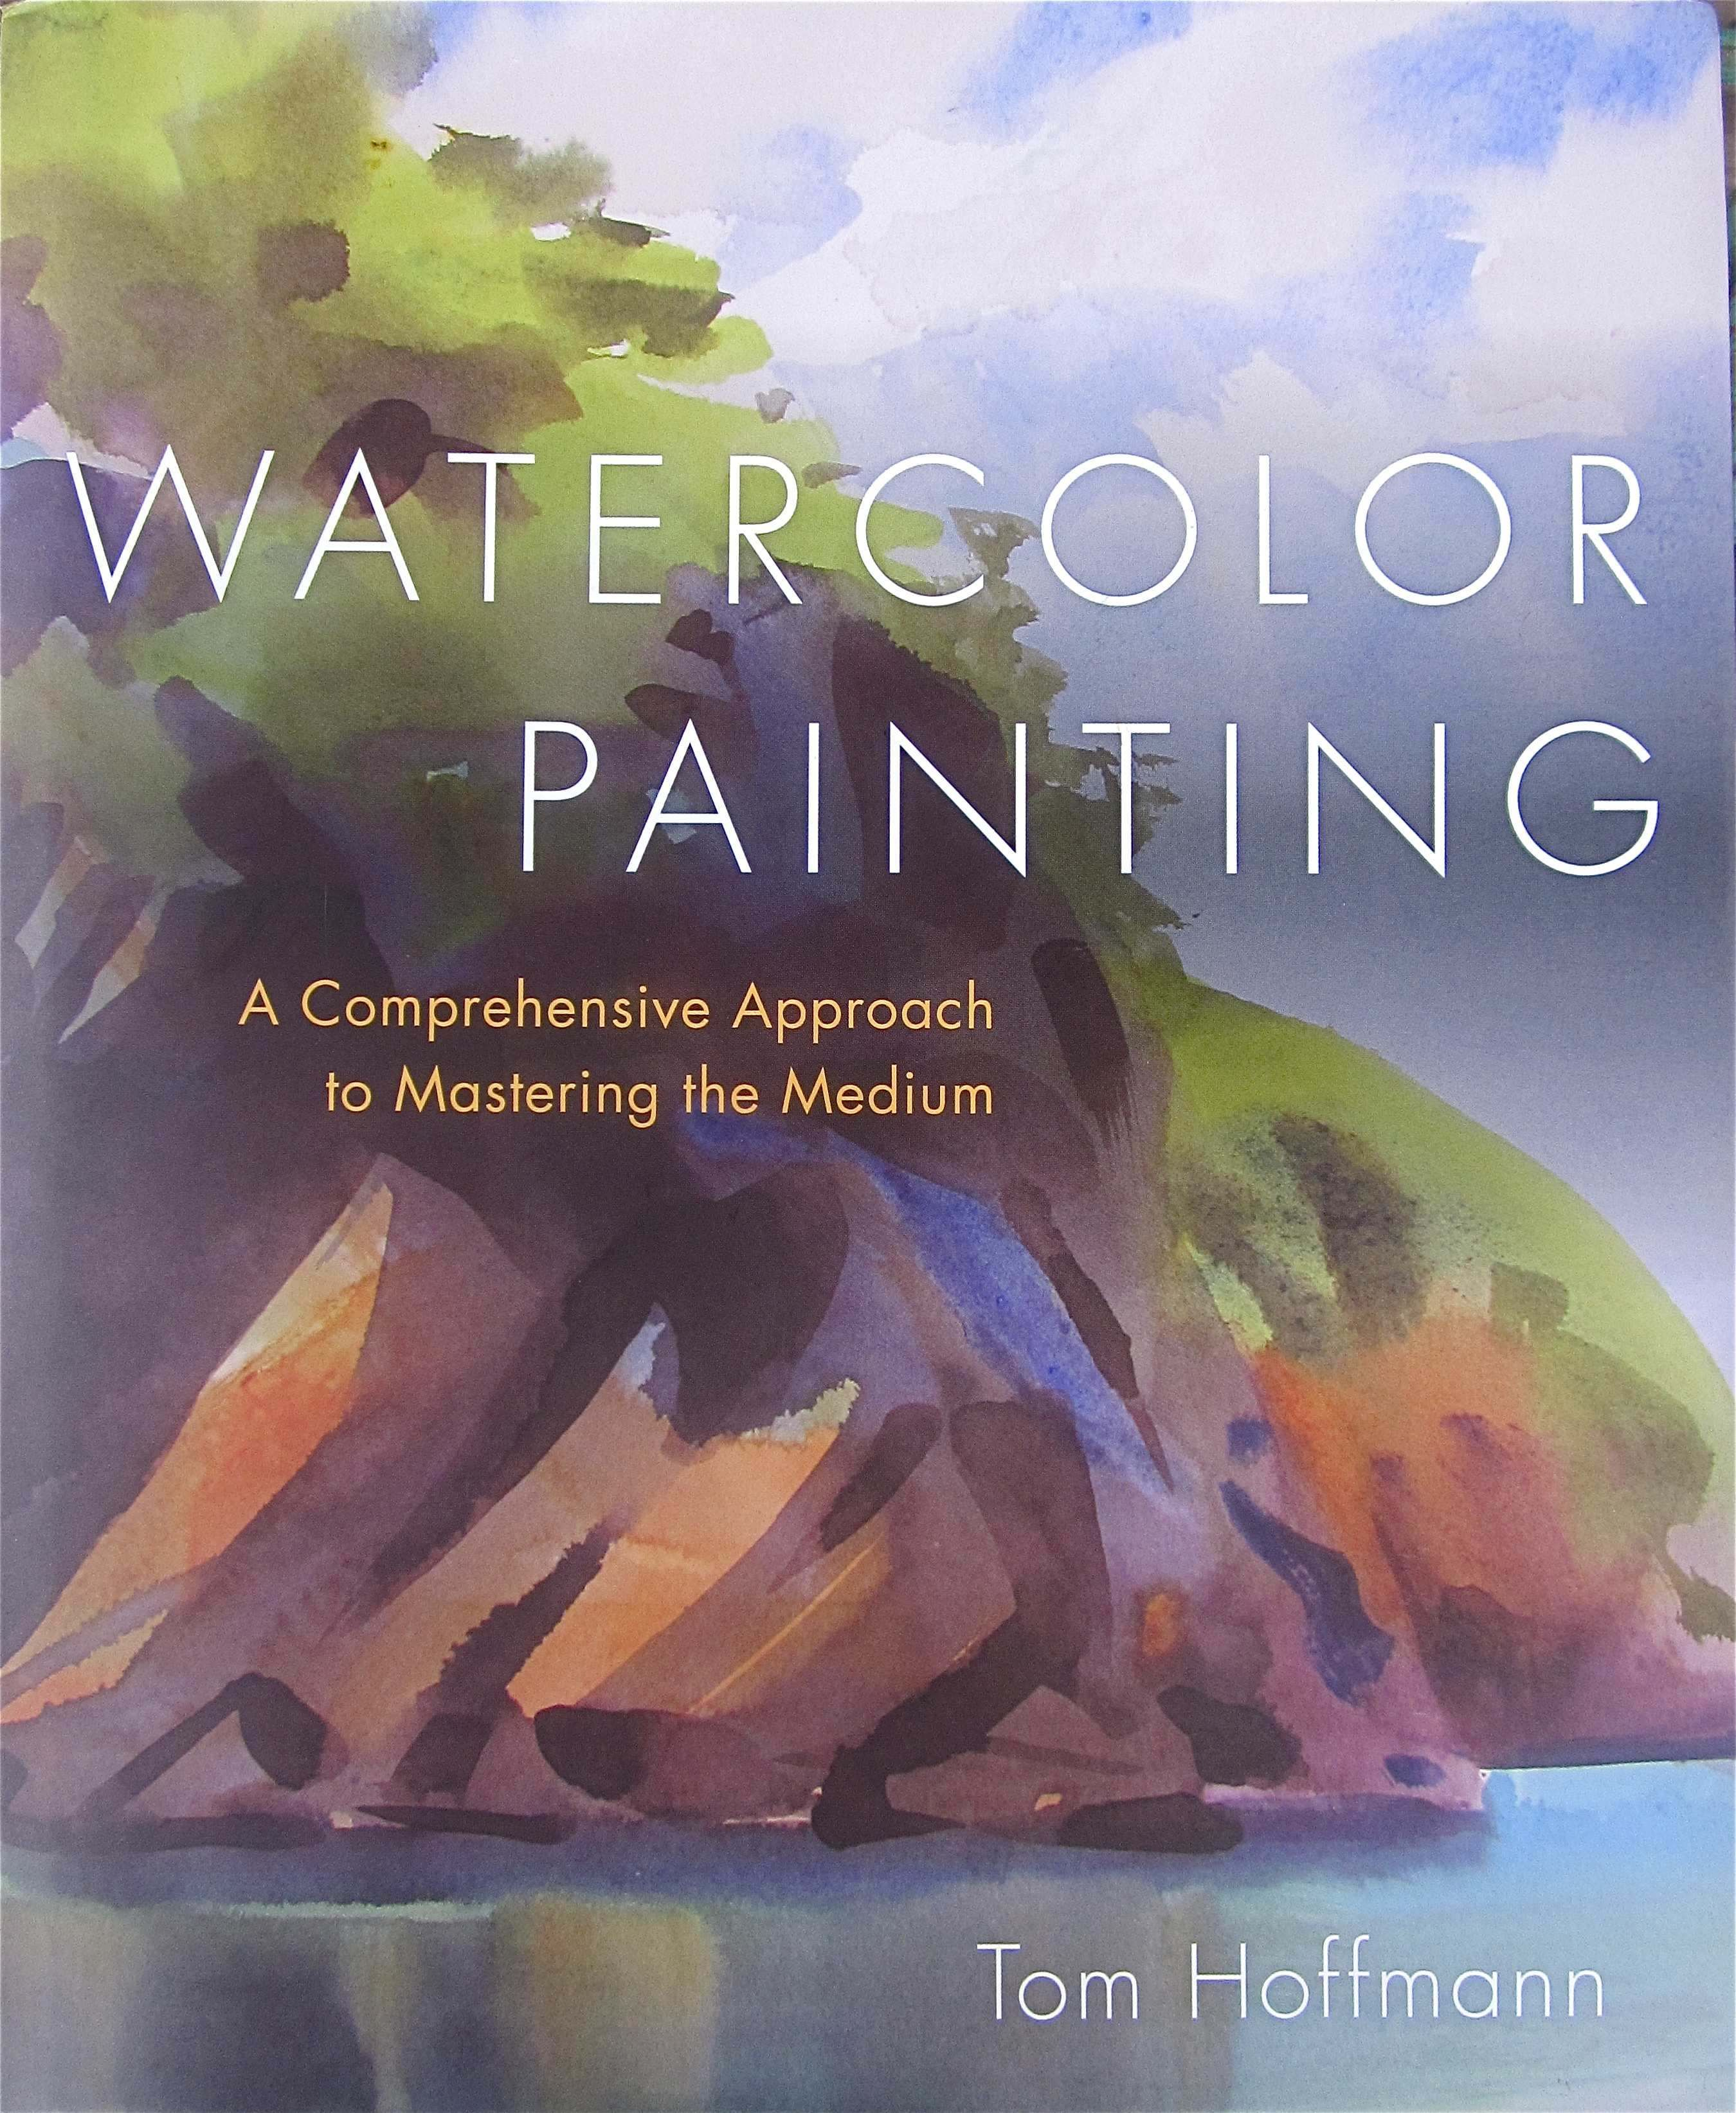 Watercolor book covers - Tom Hoffmann Book Cover Watercolor Painting